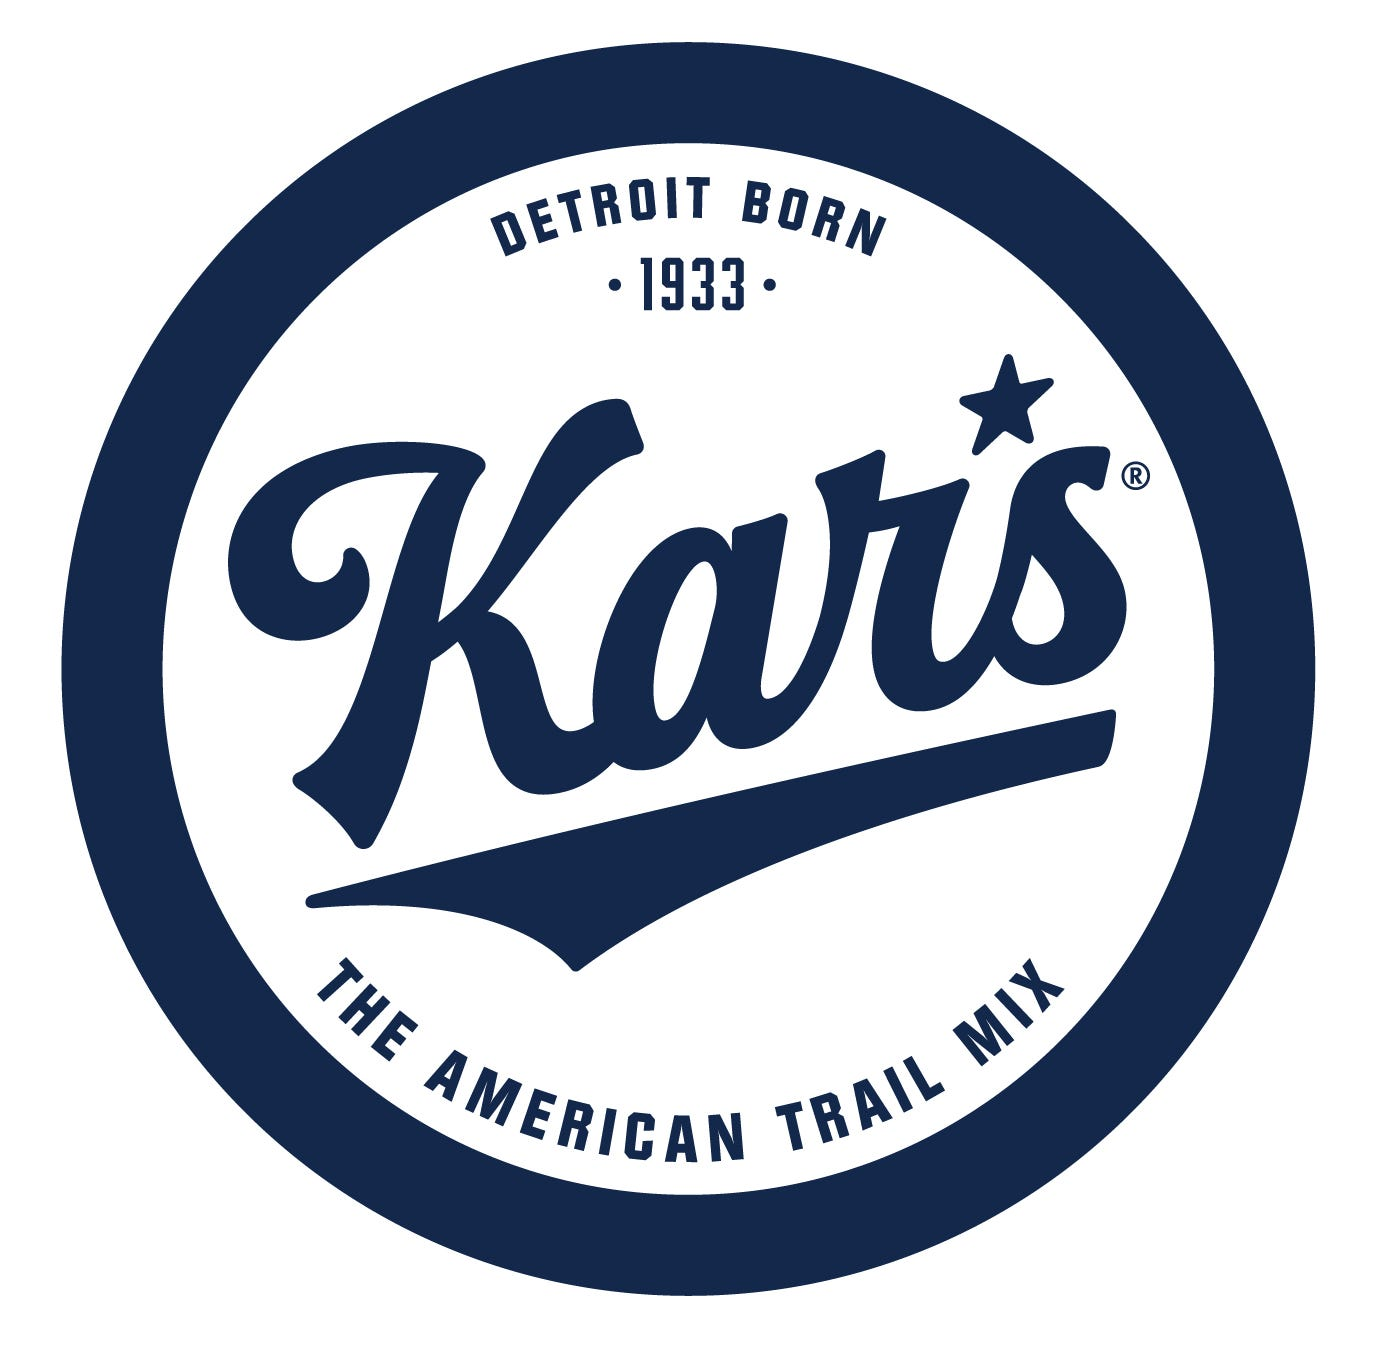 The manufacturer of Kar's Nuts said Wednesday that it has acquired the maker of Sanders chocolates.